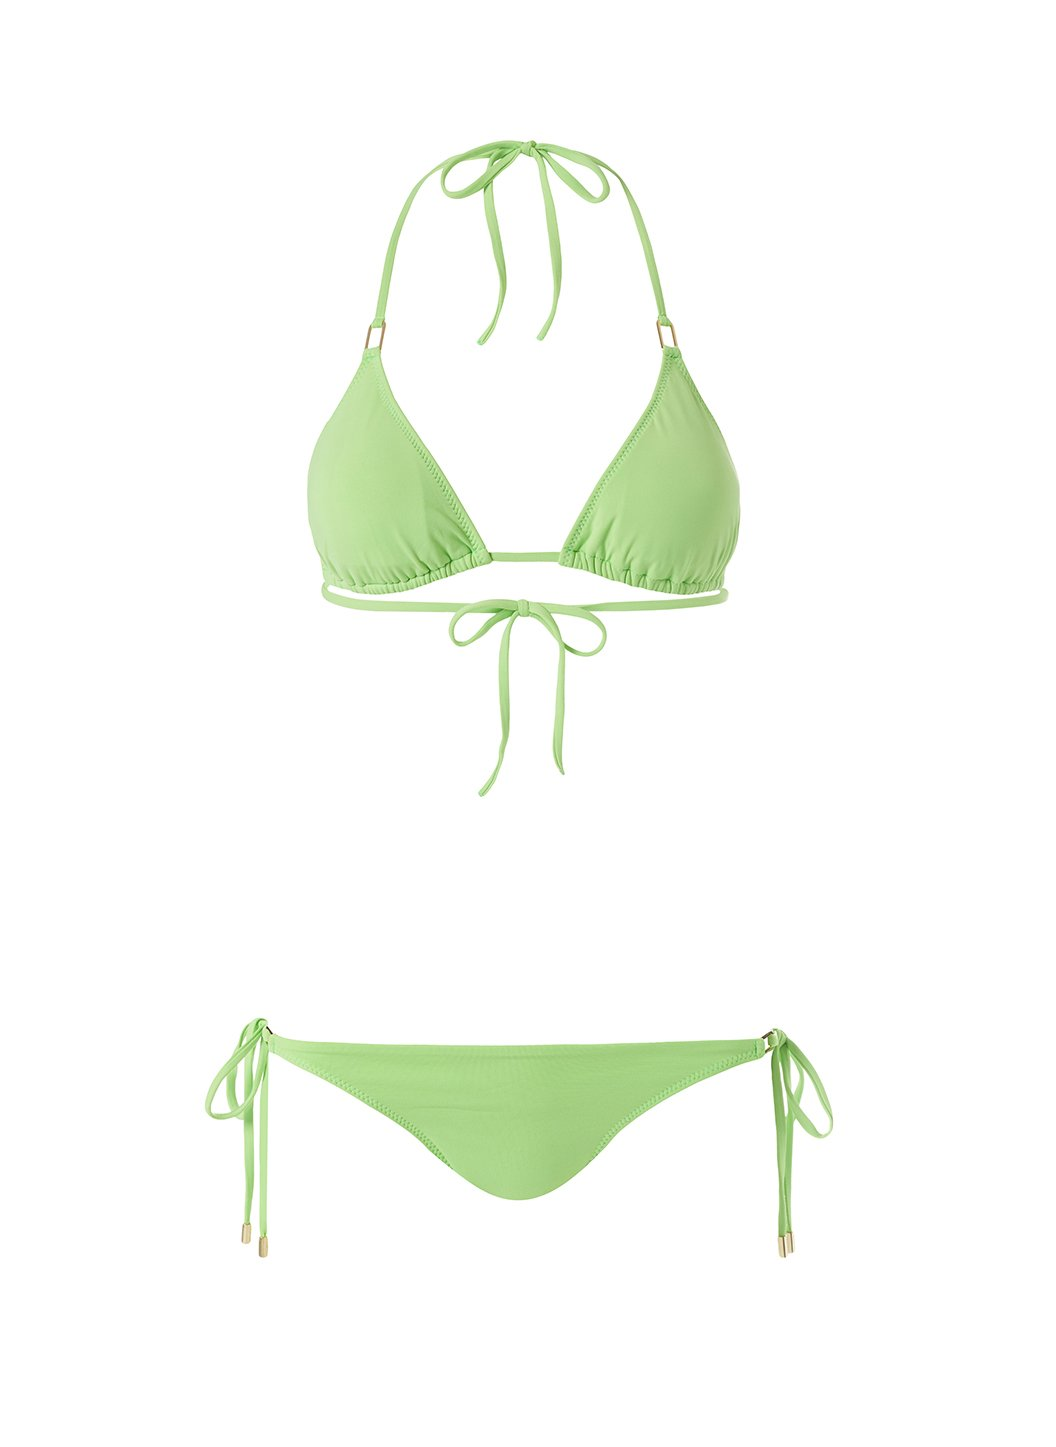 Cancun Lime Bikini Cutout